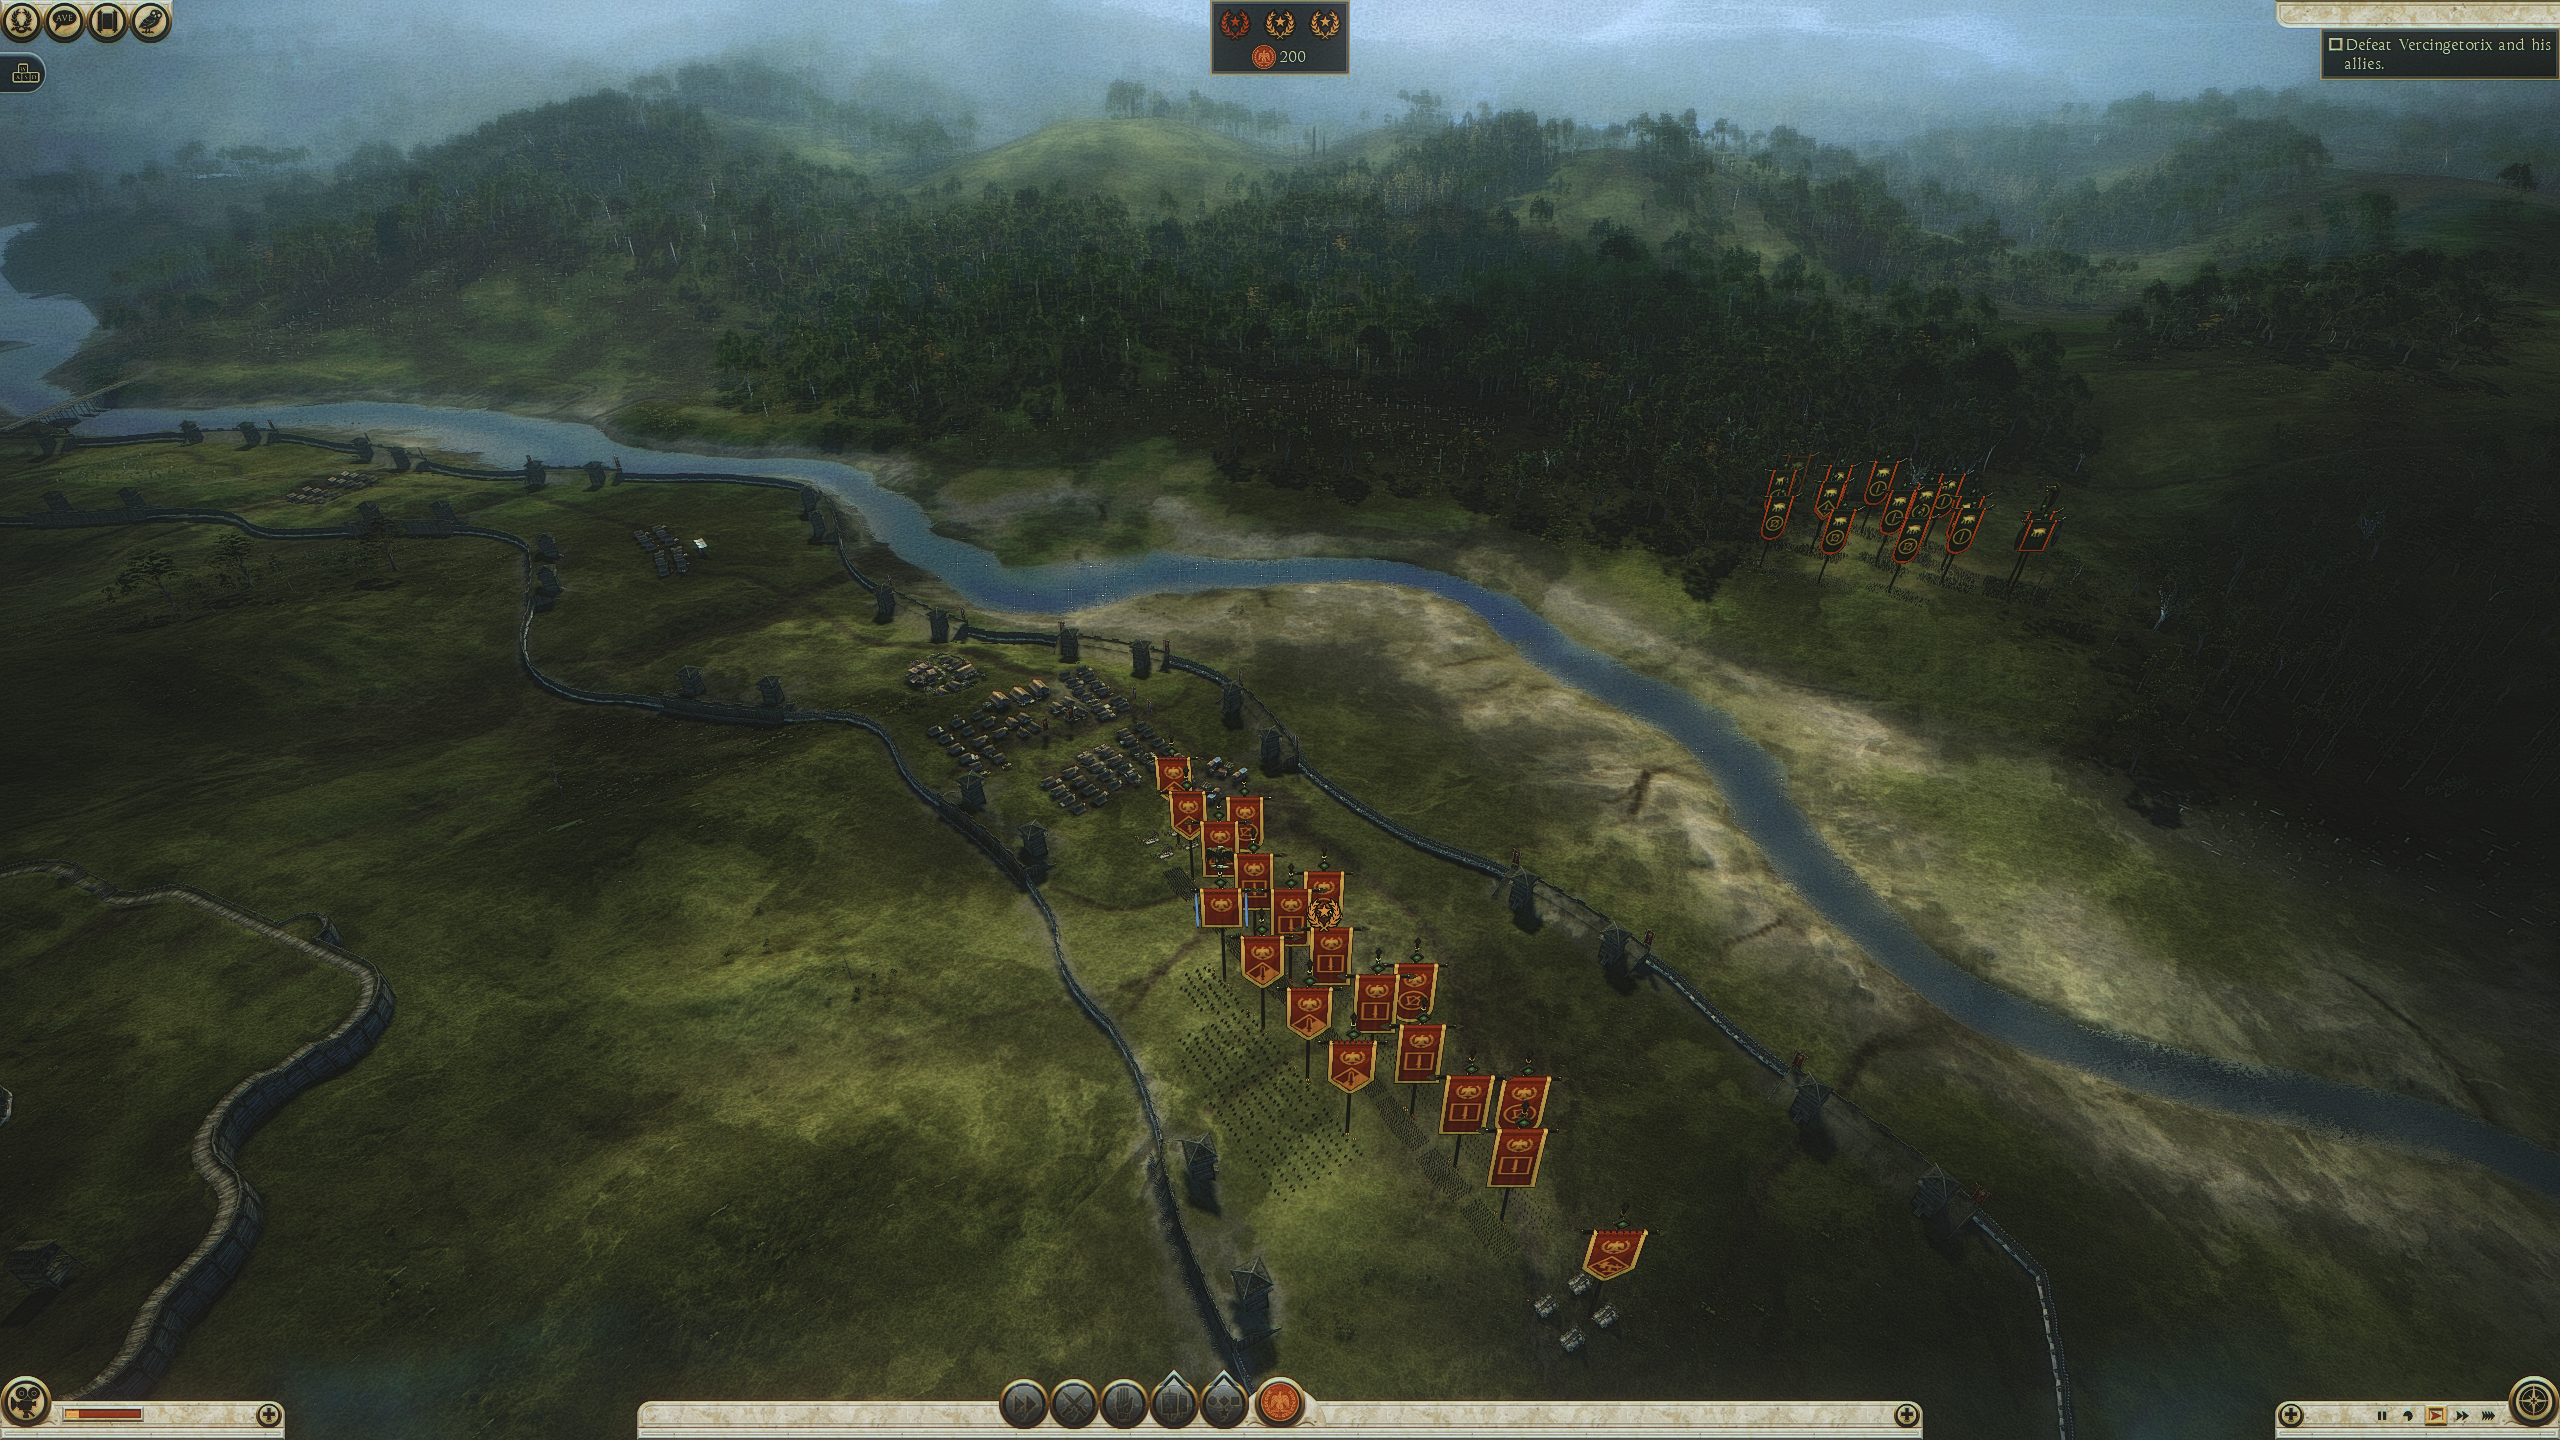 Rome total war 2 patch download non steam. Rome total war 2 patch.